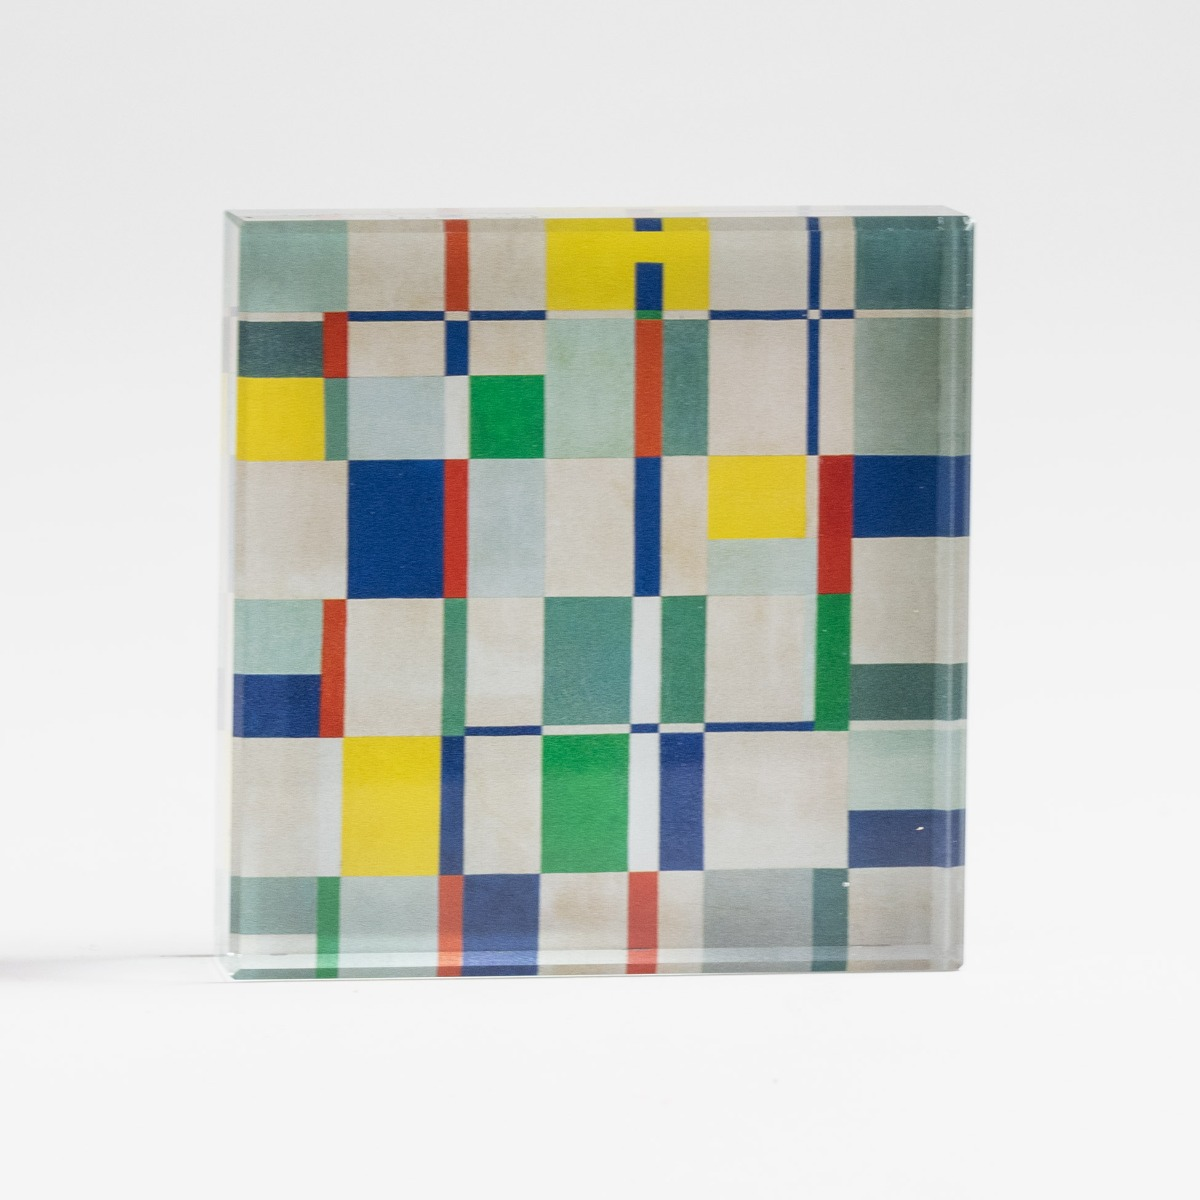 Composition (1953) paperweight